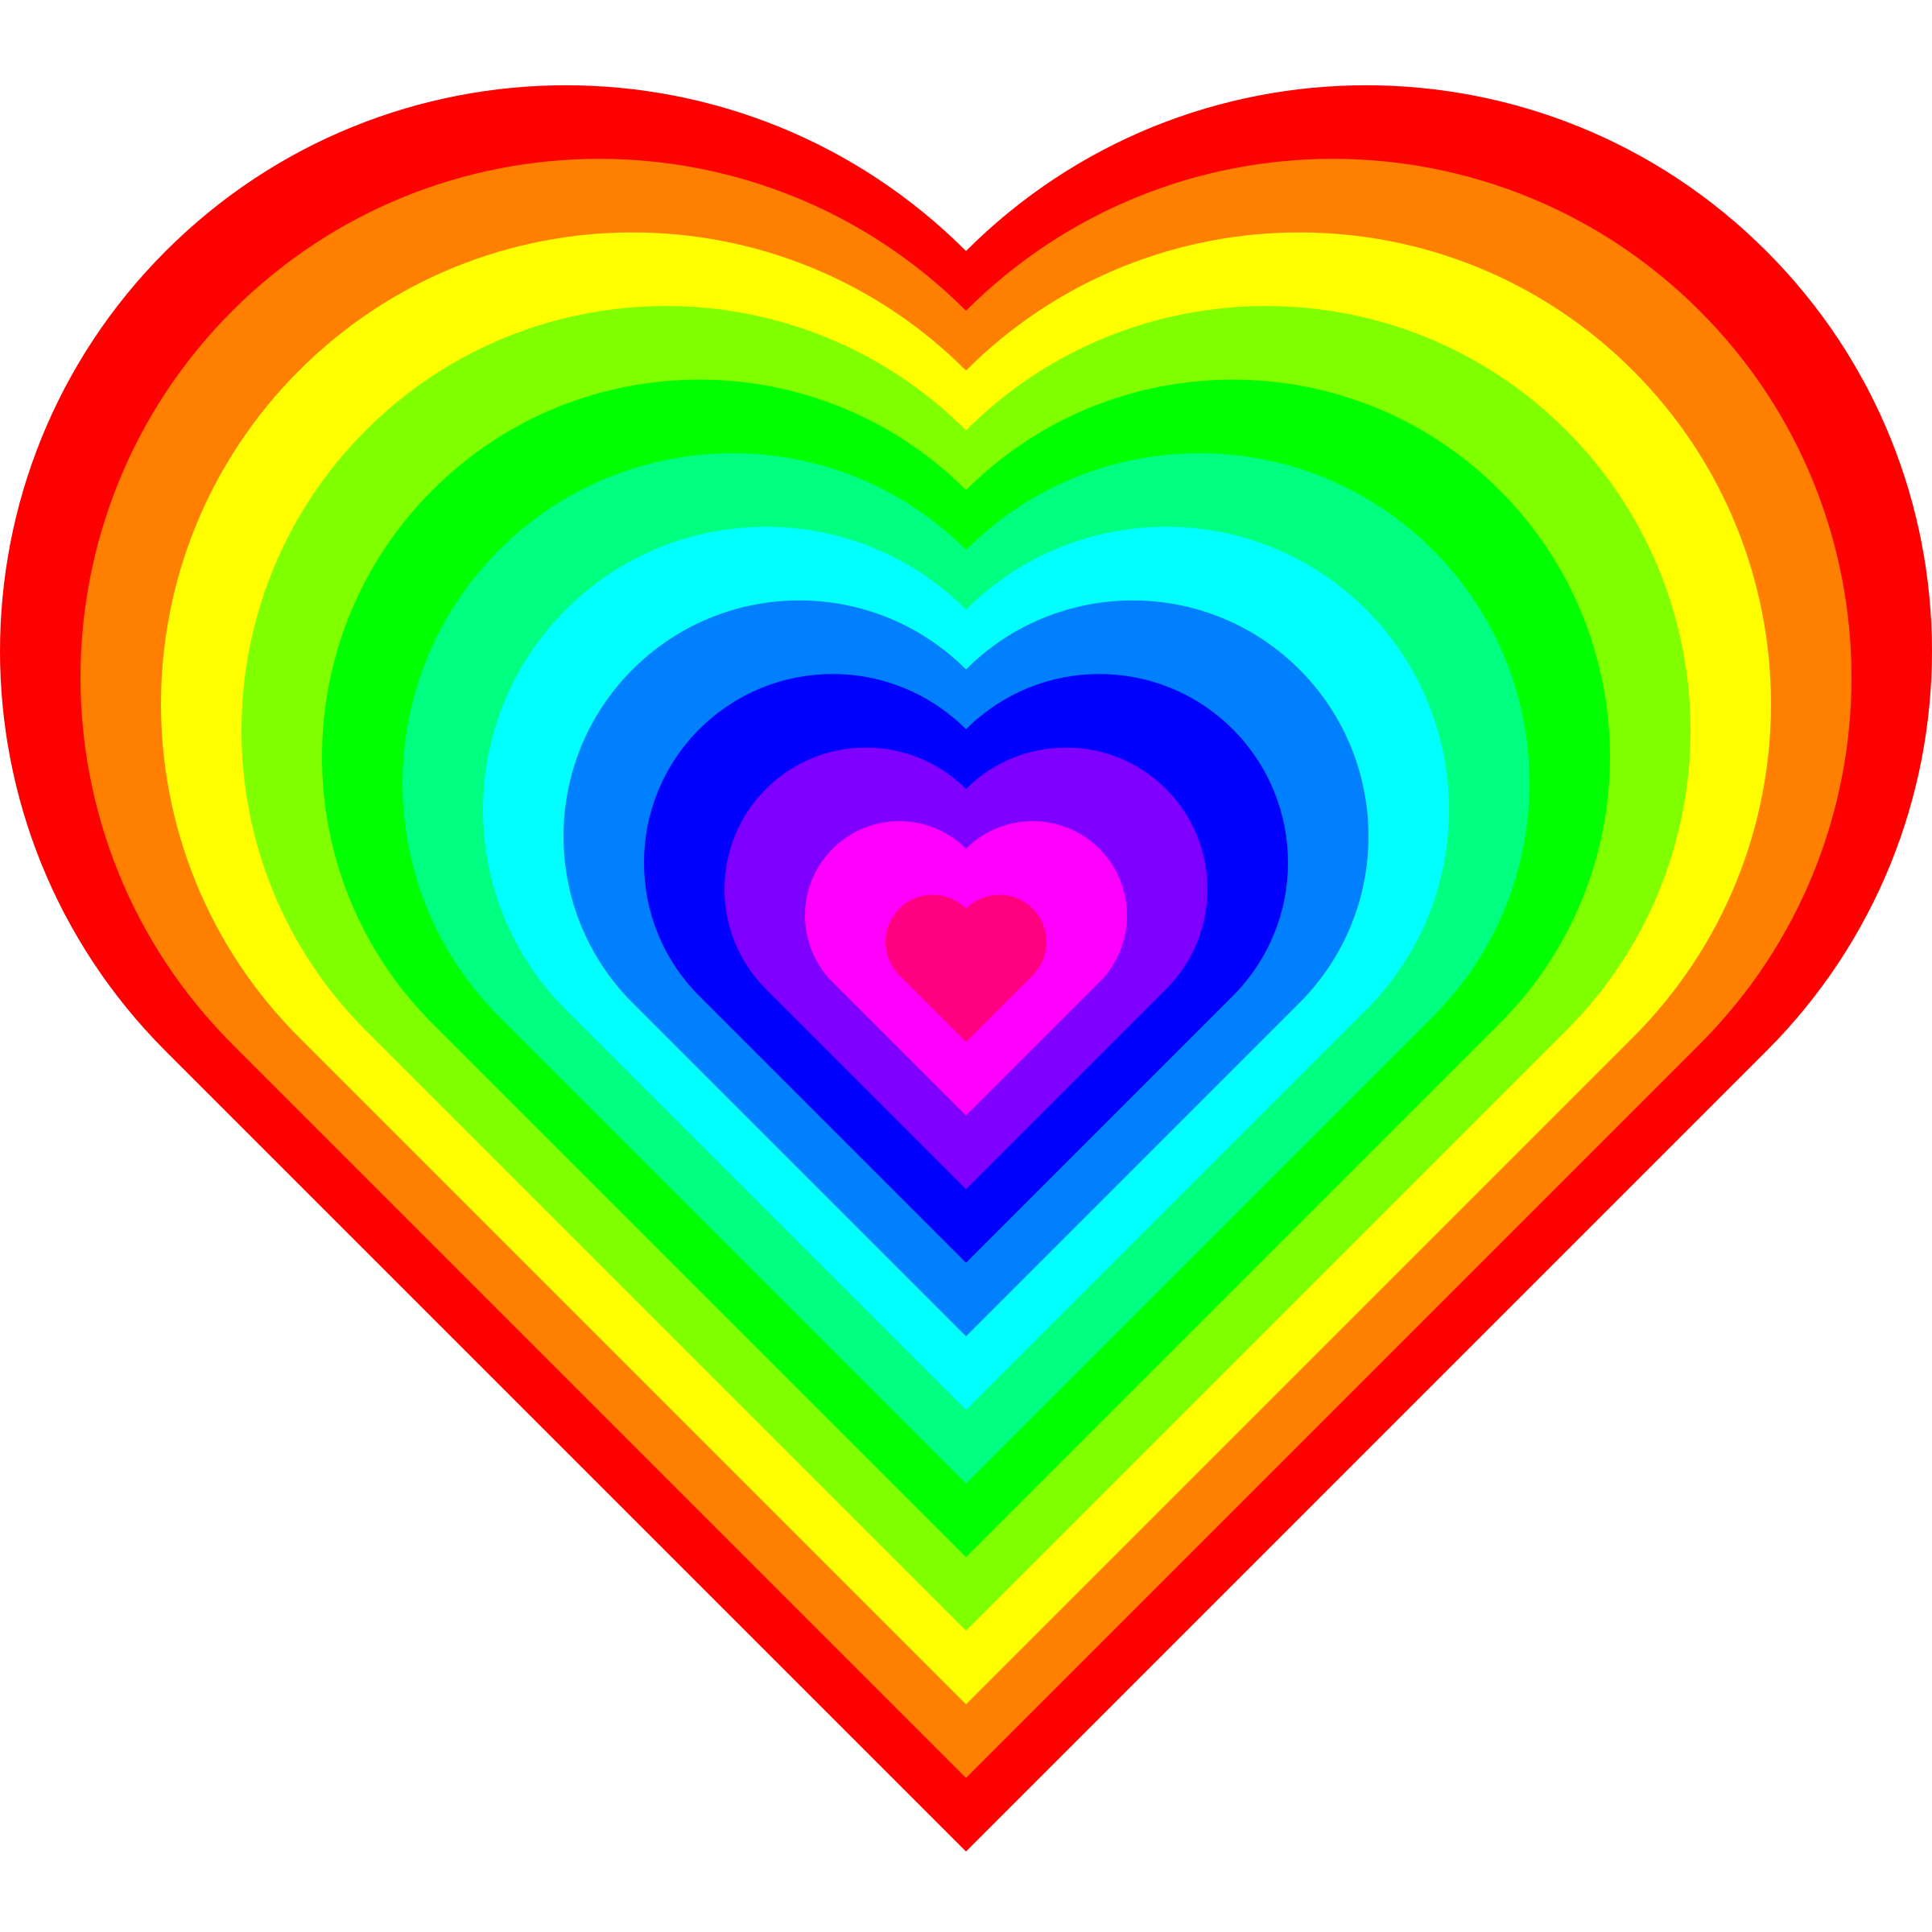 Geometric color big image. Clipart heart animated